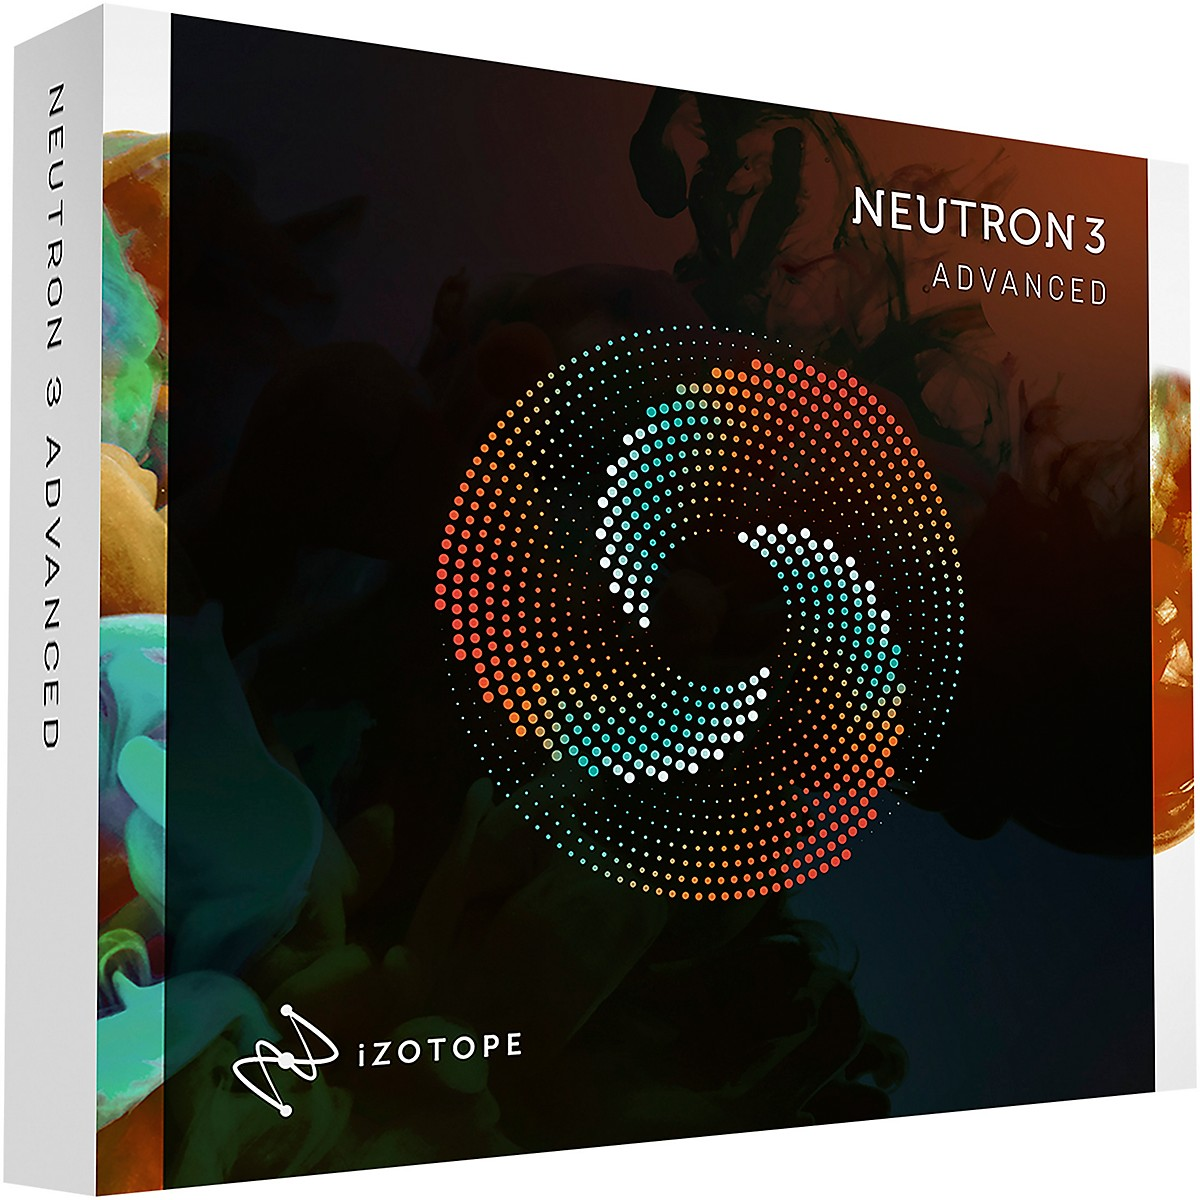 iZotope Neutron 3 Advanced EDU